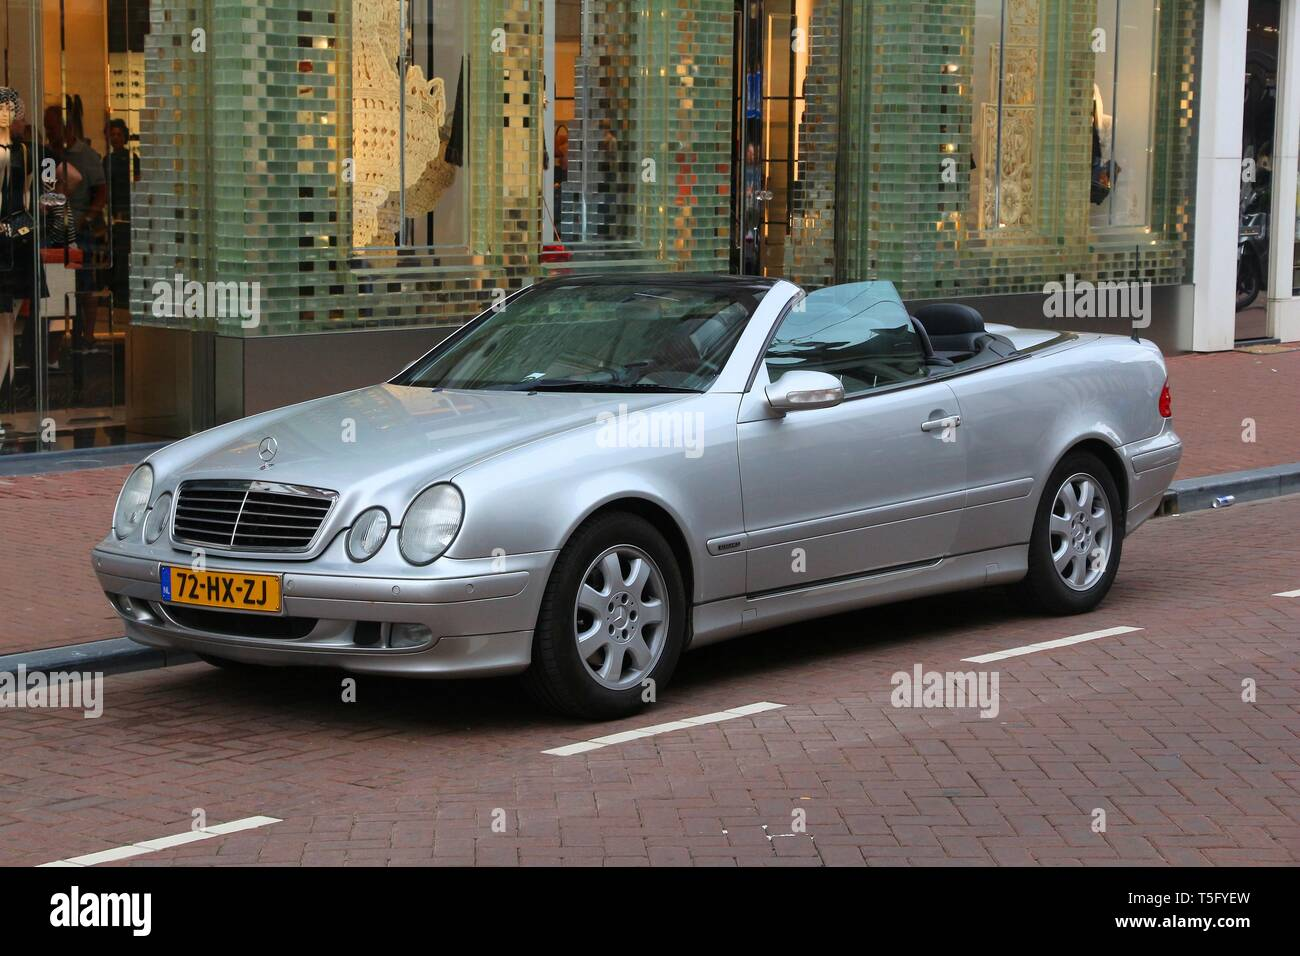 AMSTERDAM, NETHERLANDS - JULY 10, 2017: Silver Mercedes-Benz E-class convertible car parked in Amsterdam. Netherlands has 528 registered cars per 1,00 Stock Photo